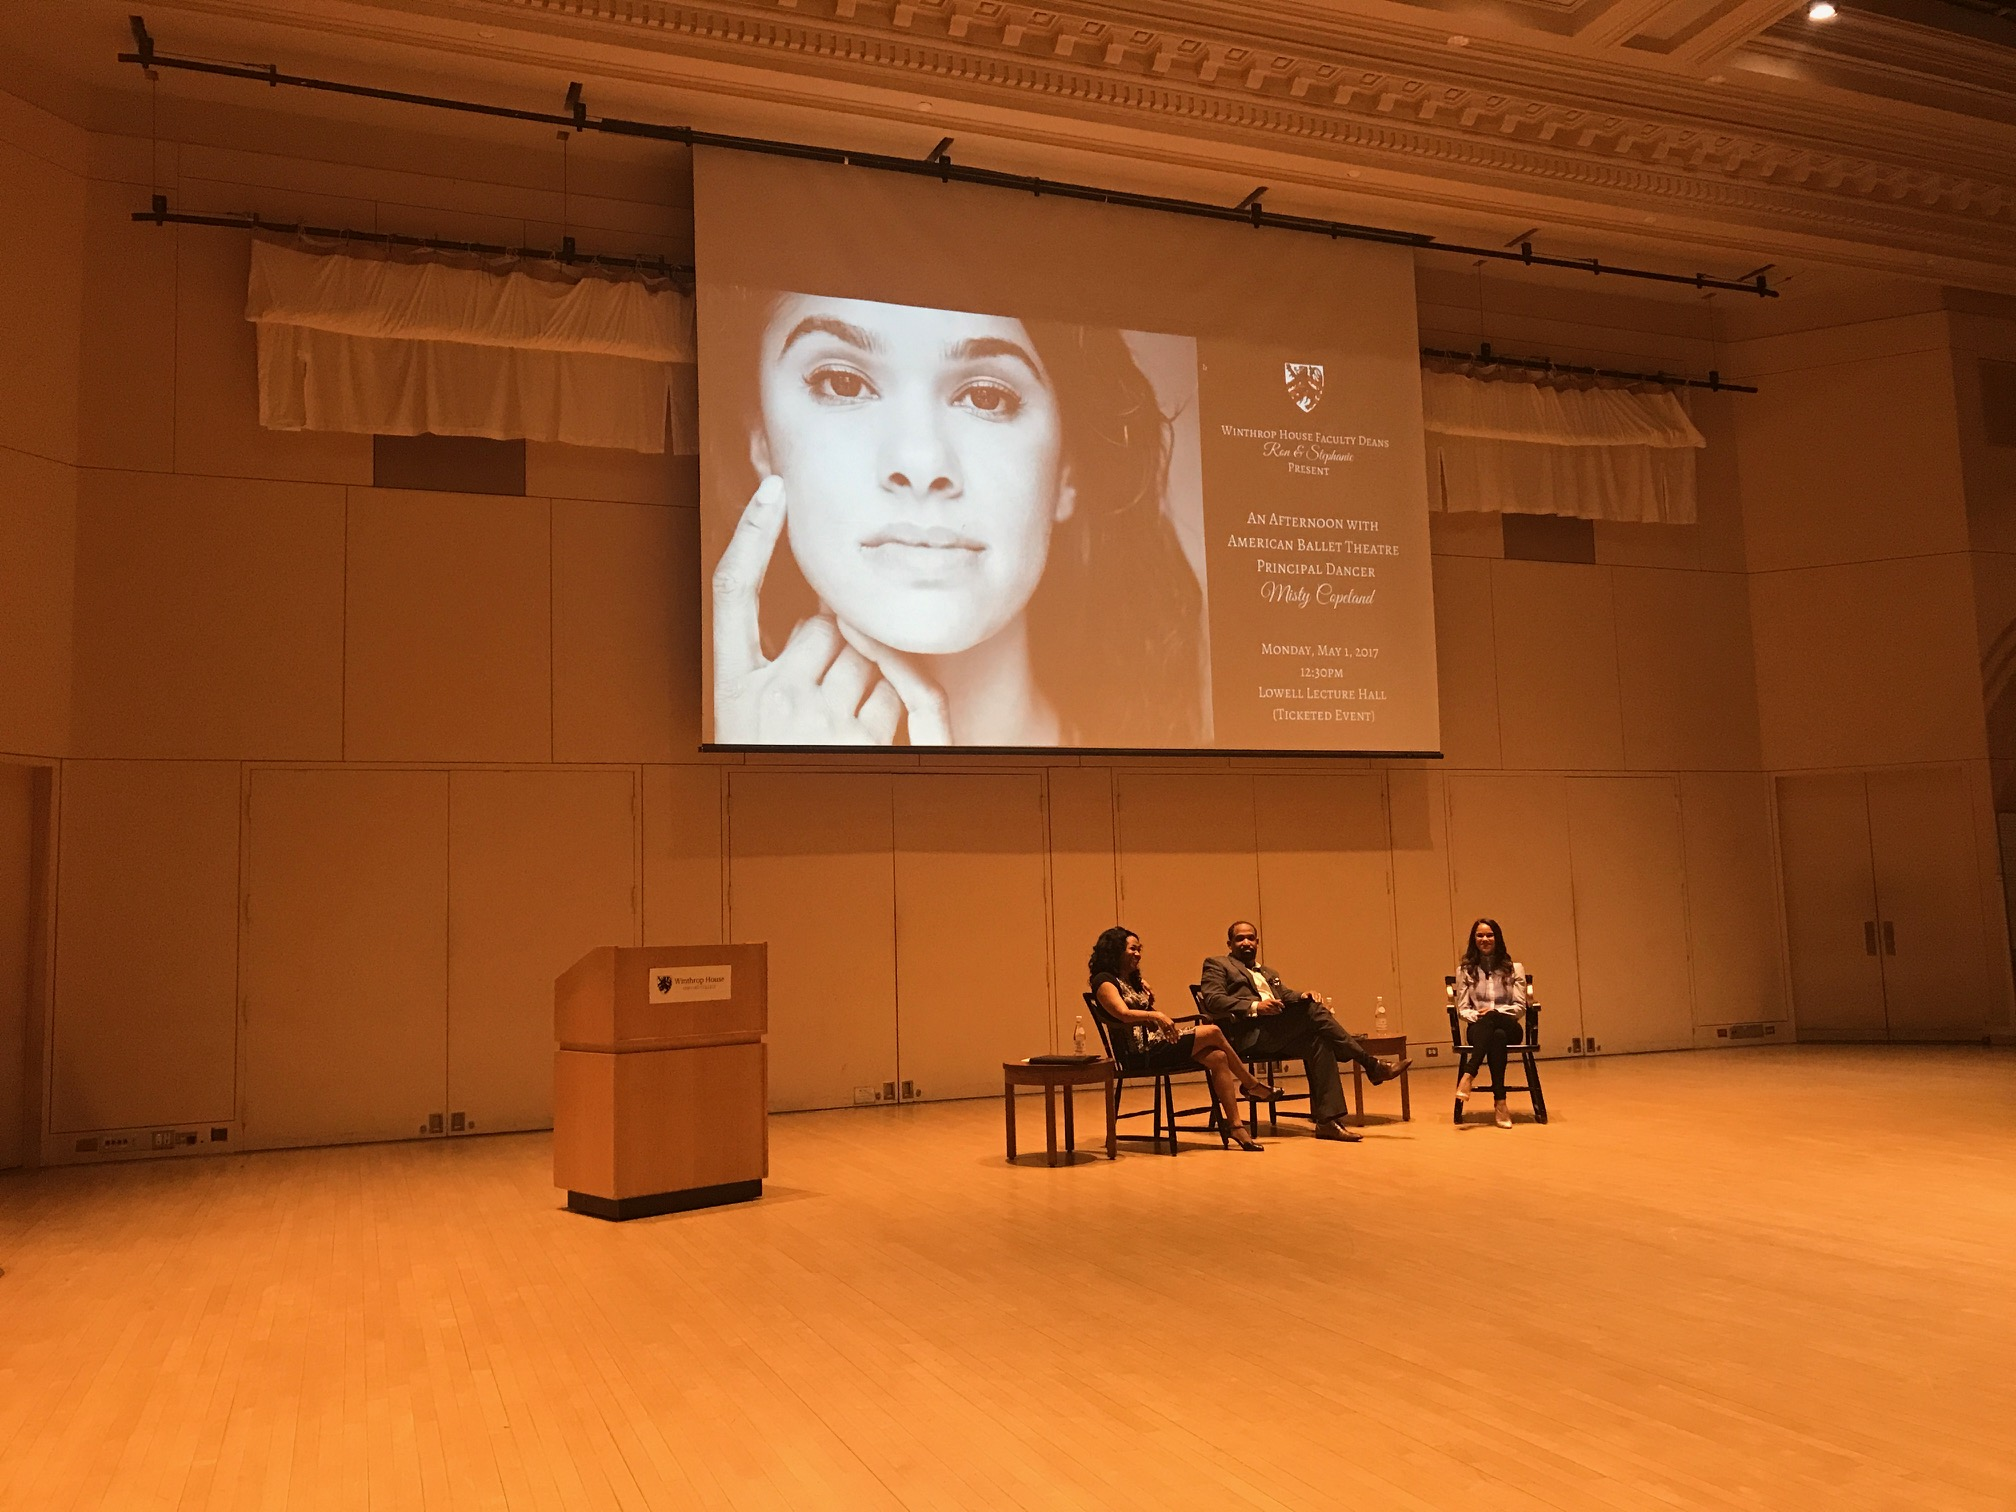 Misty Copeland at the Lowell Lecture Hall, Harvard University